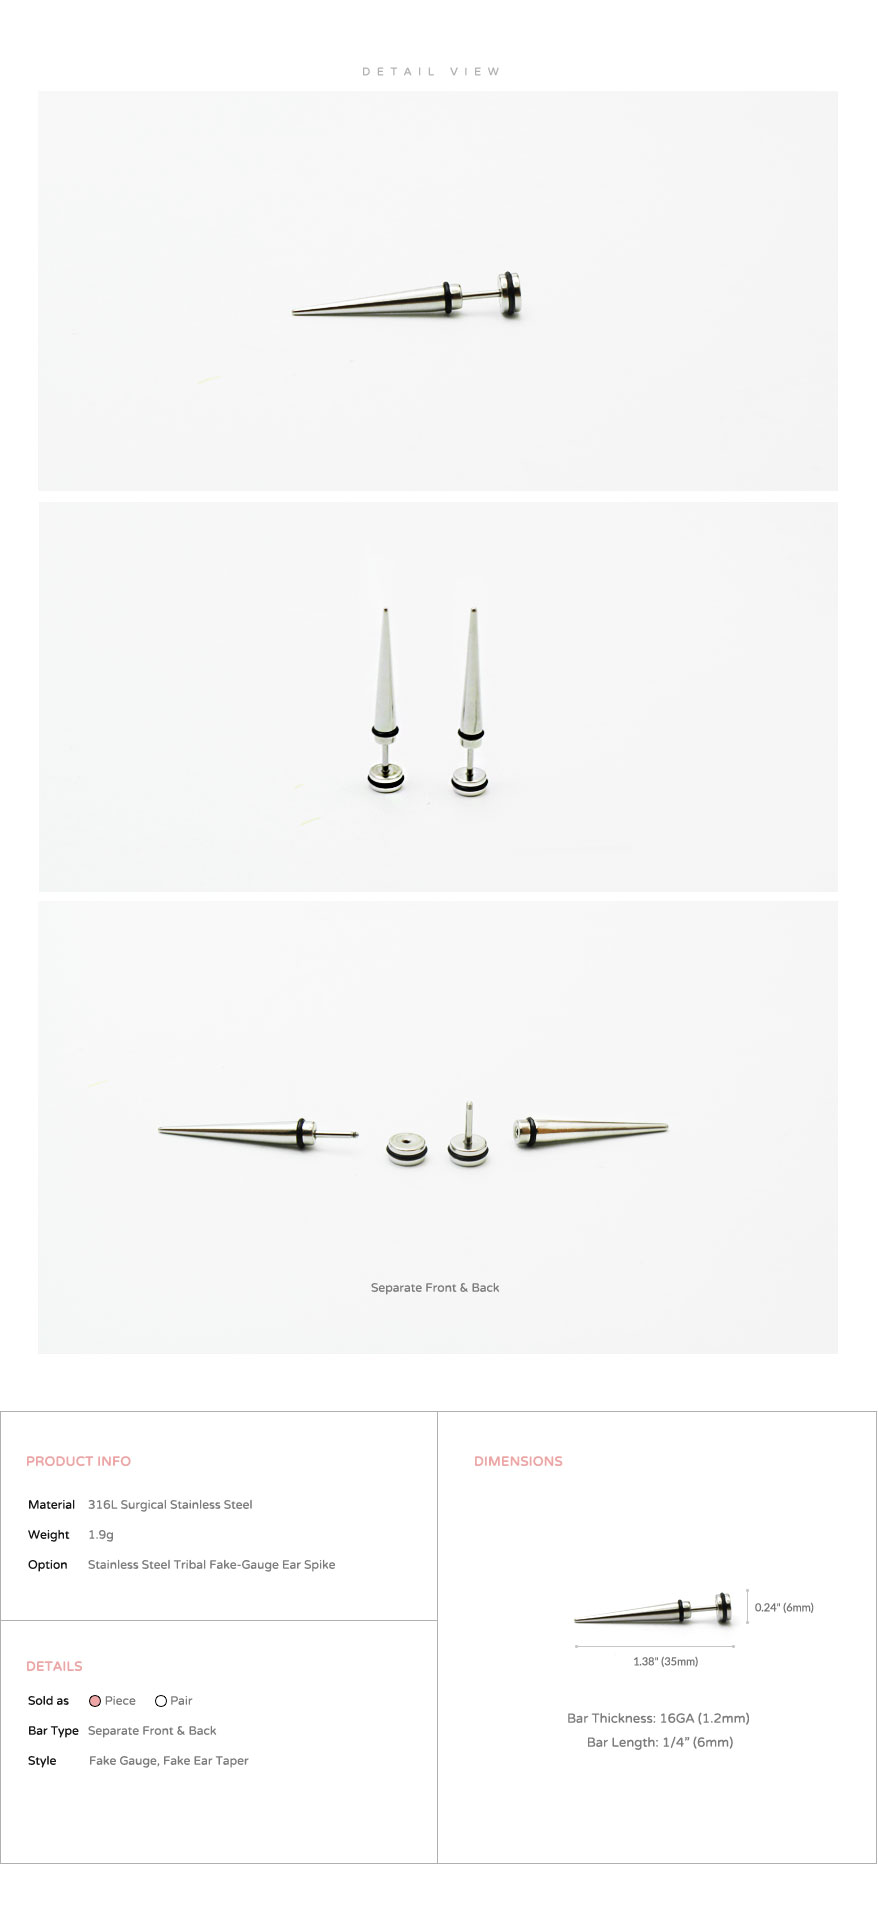 ear_studs_piercing_Cartilage_earrings_16g_316l_Surgical_Stainless_Steel_korean_asian_style_jewelry_fake_Gauge_taper_3